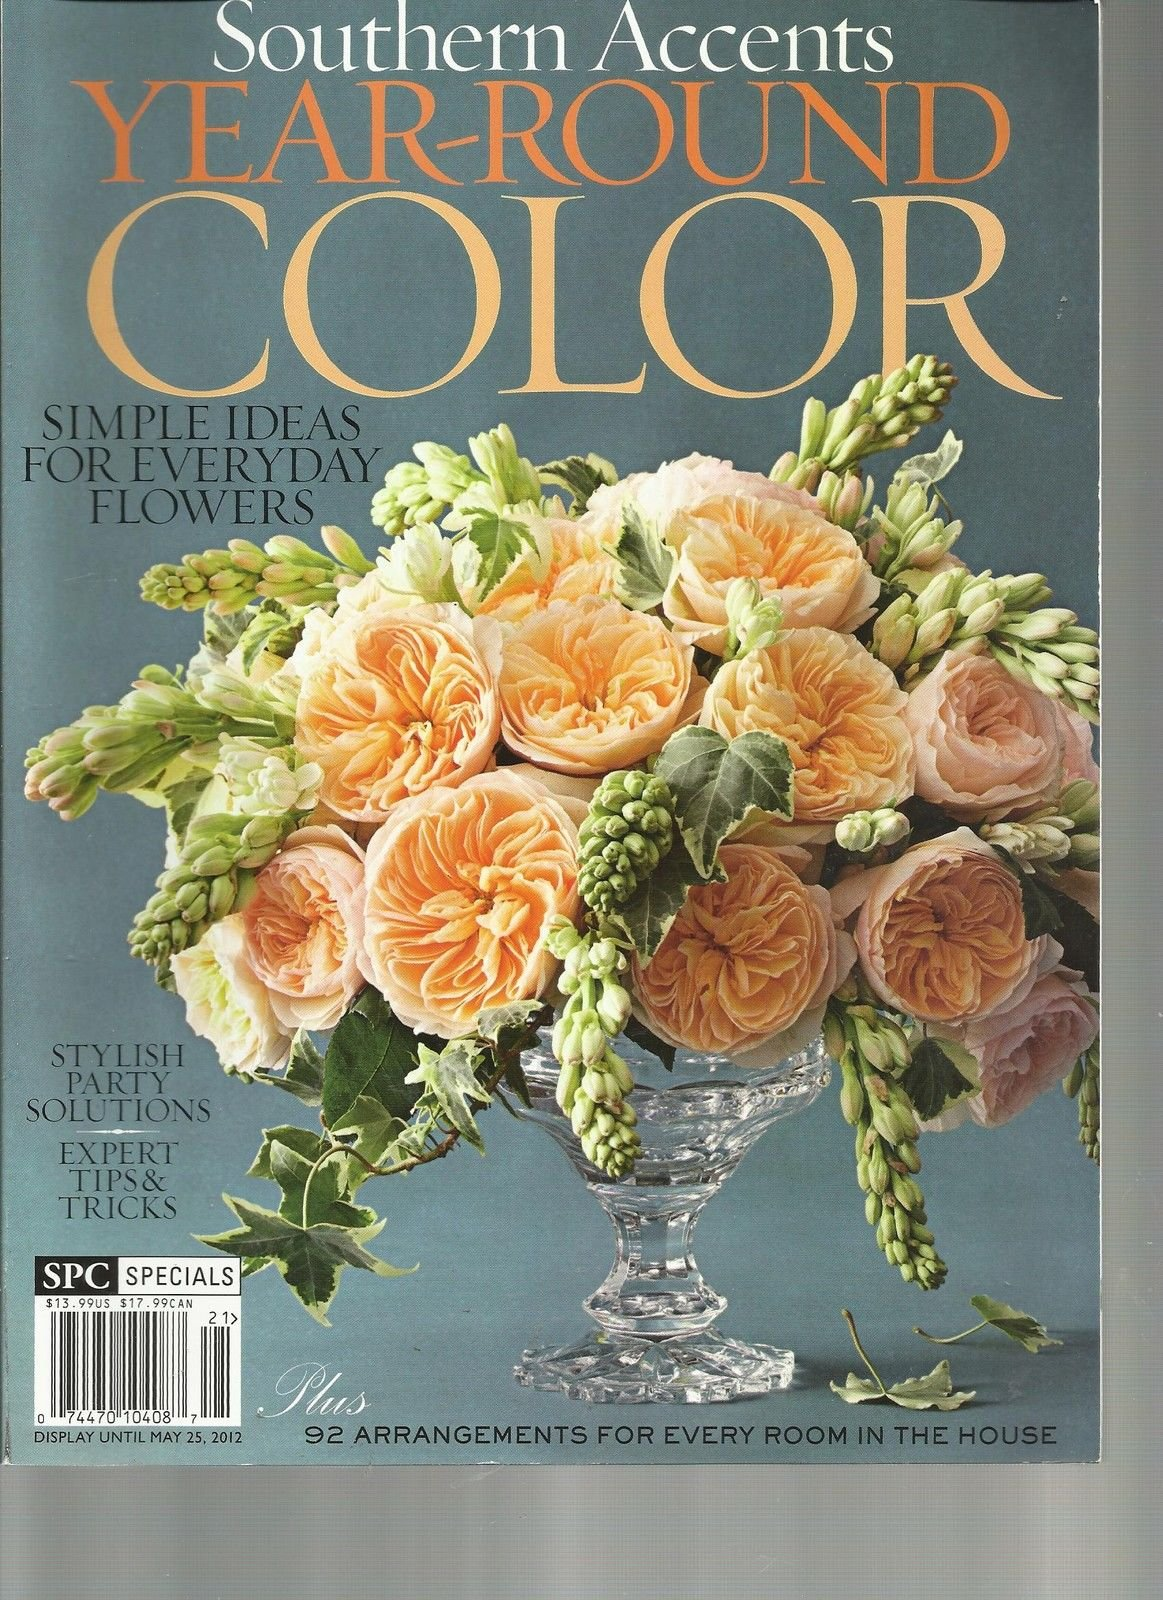 SOUTHERN ACCENTS, 2012 (YEAR ROUND COLOR) SIMPLE IDEAS FOR EVERYDAY FLOWERS